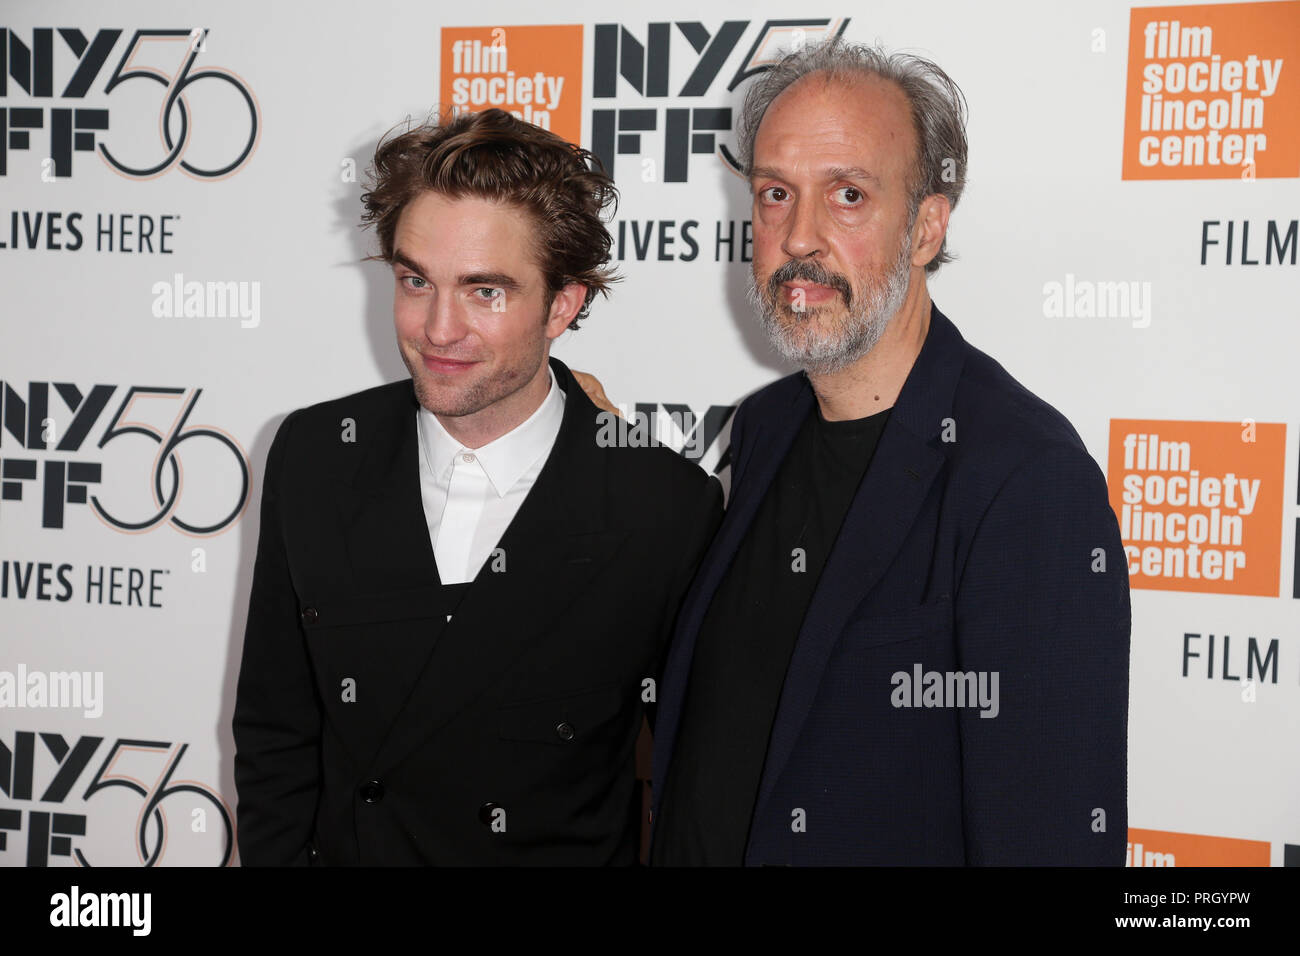 "New York, Vereinigte Staaten. Okt, 2018 02. NEW YORK - OKT 2: Schauspieler Robert Pattinson (L) und Direktor von NYFF Kent Jones die ""High Life"" Premiere in der Alice Tully Hall besuchen am 2. Oktober 2018 in New York City. Credit: Foto Access/Alamy leben Nachrichten Stockbild"